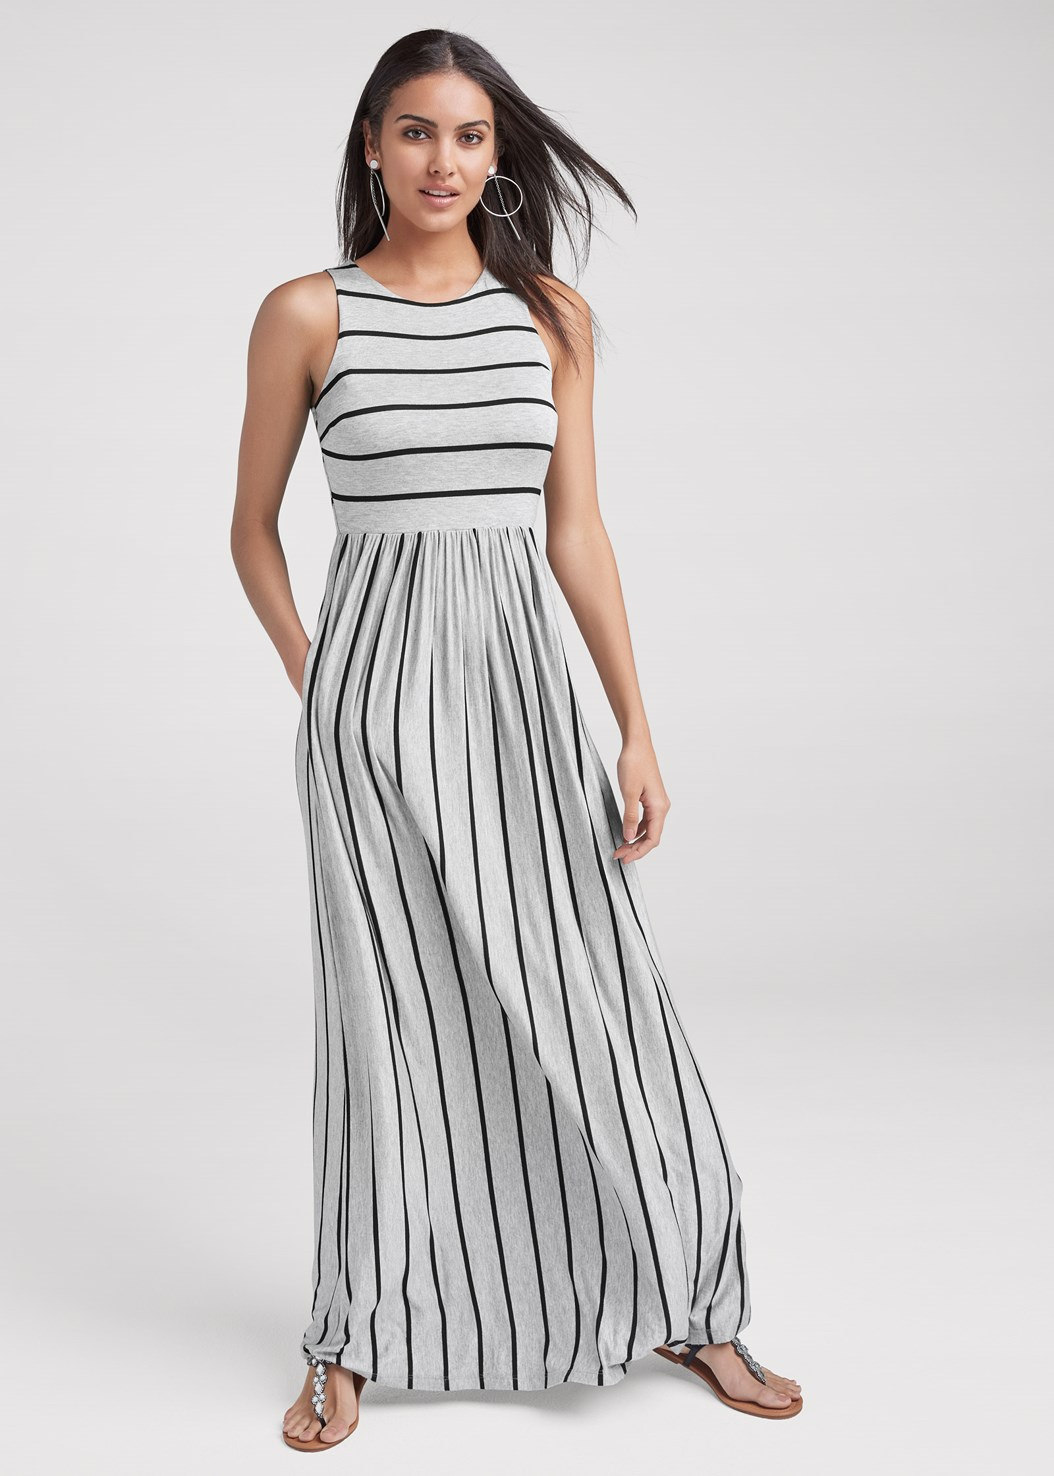 Stripe Maxi Dress,Hoop Detail Earrings